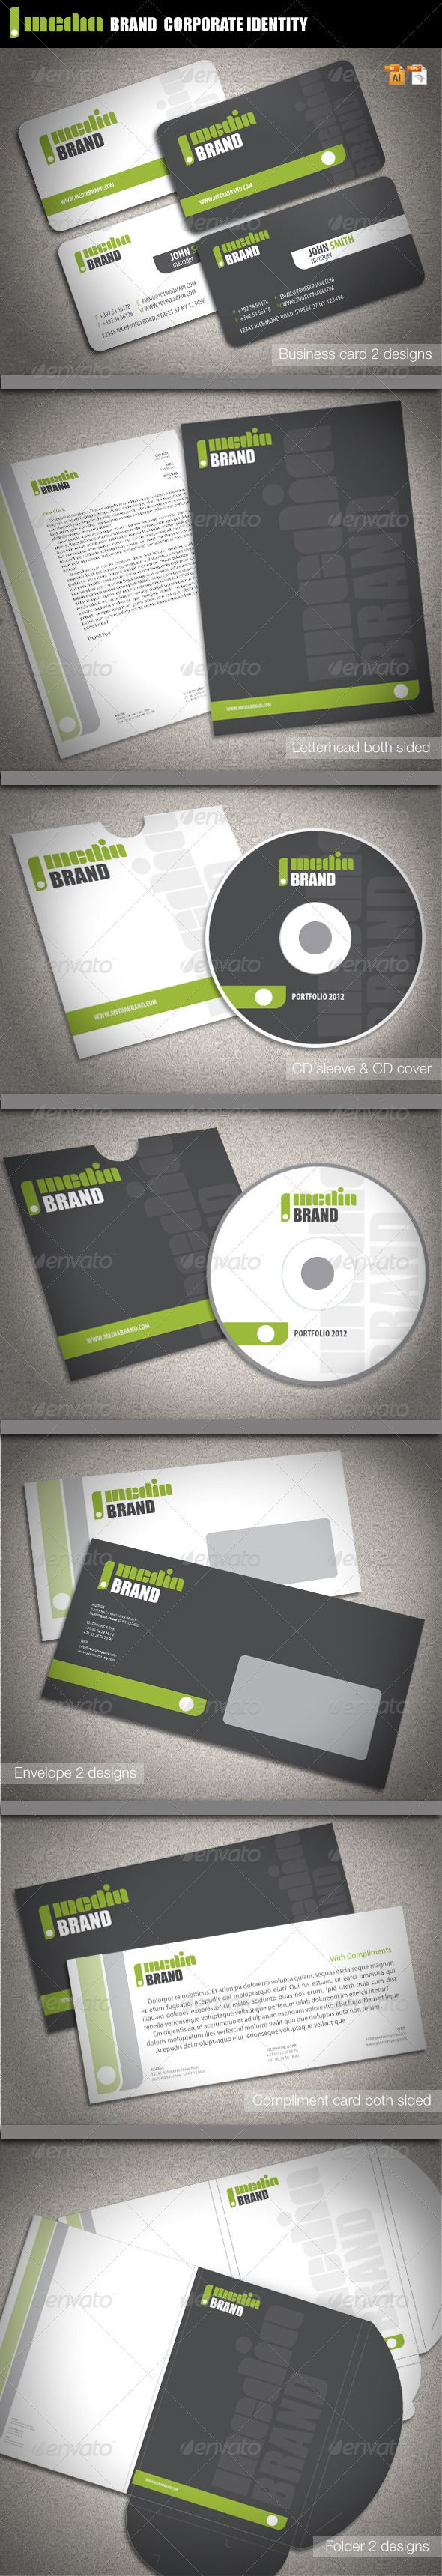 Media Brand Corporate Identity  Corporate Identity Stationery